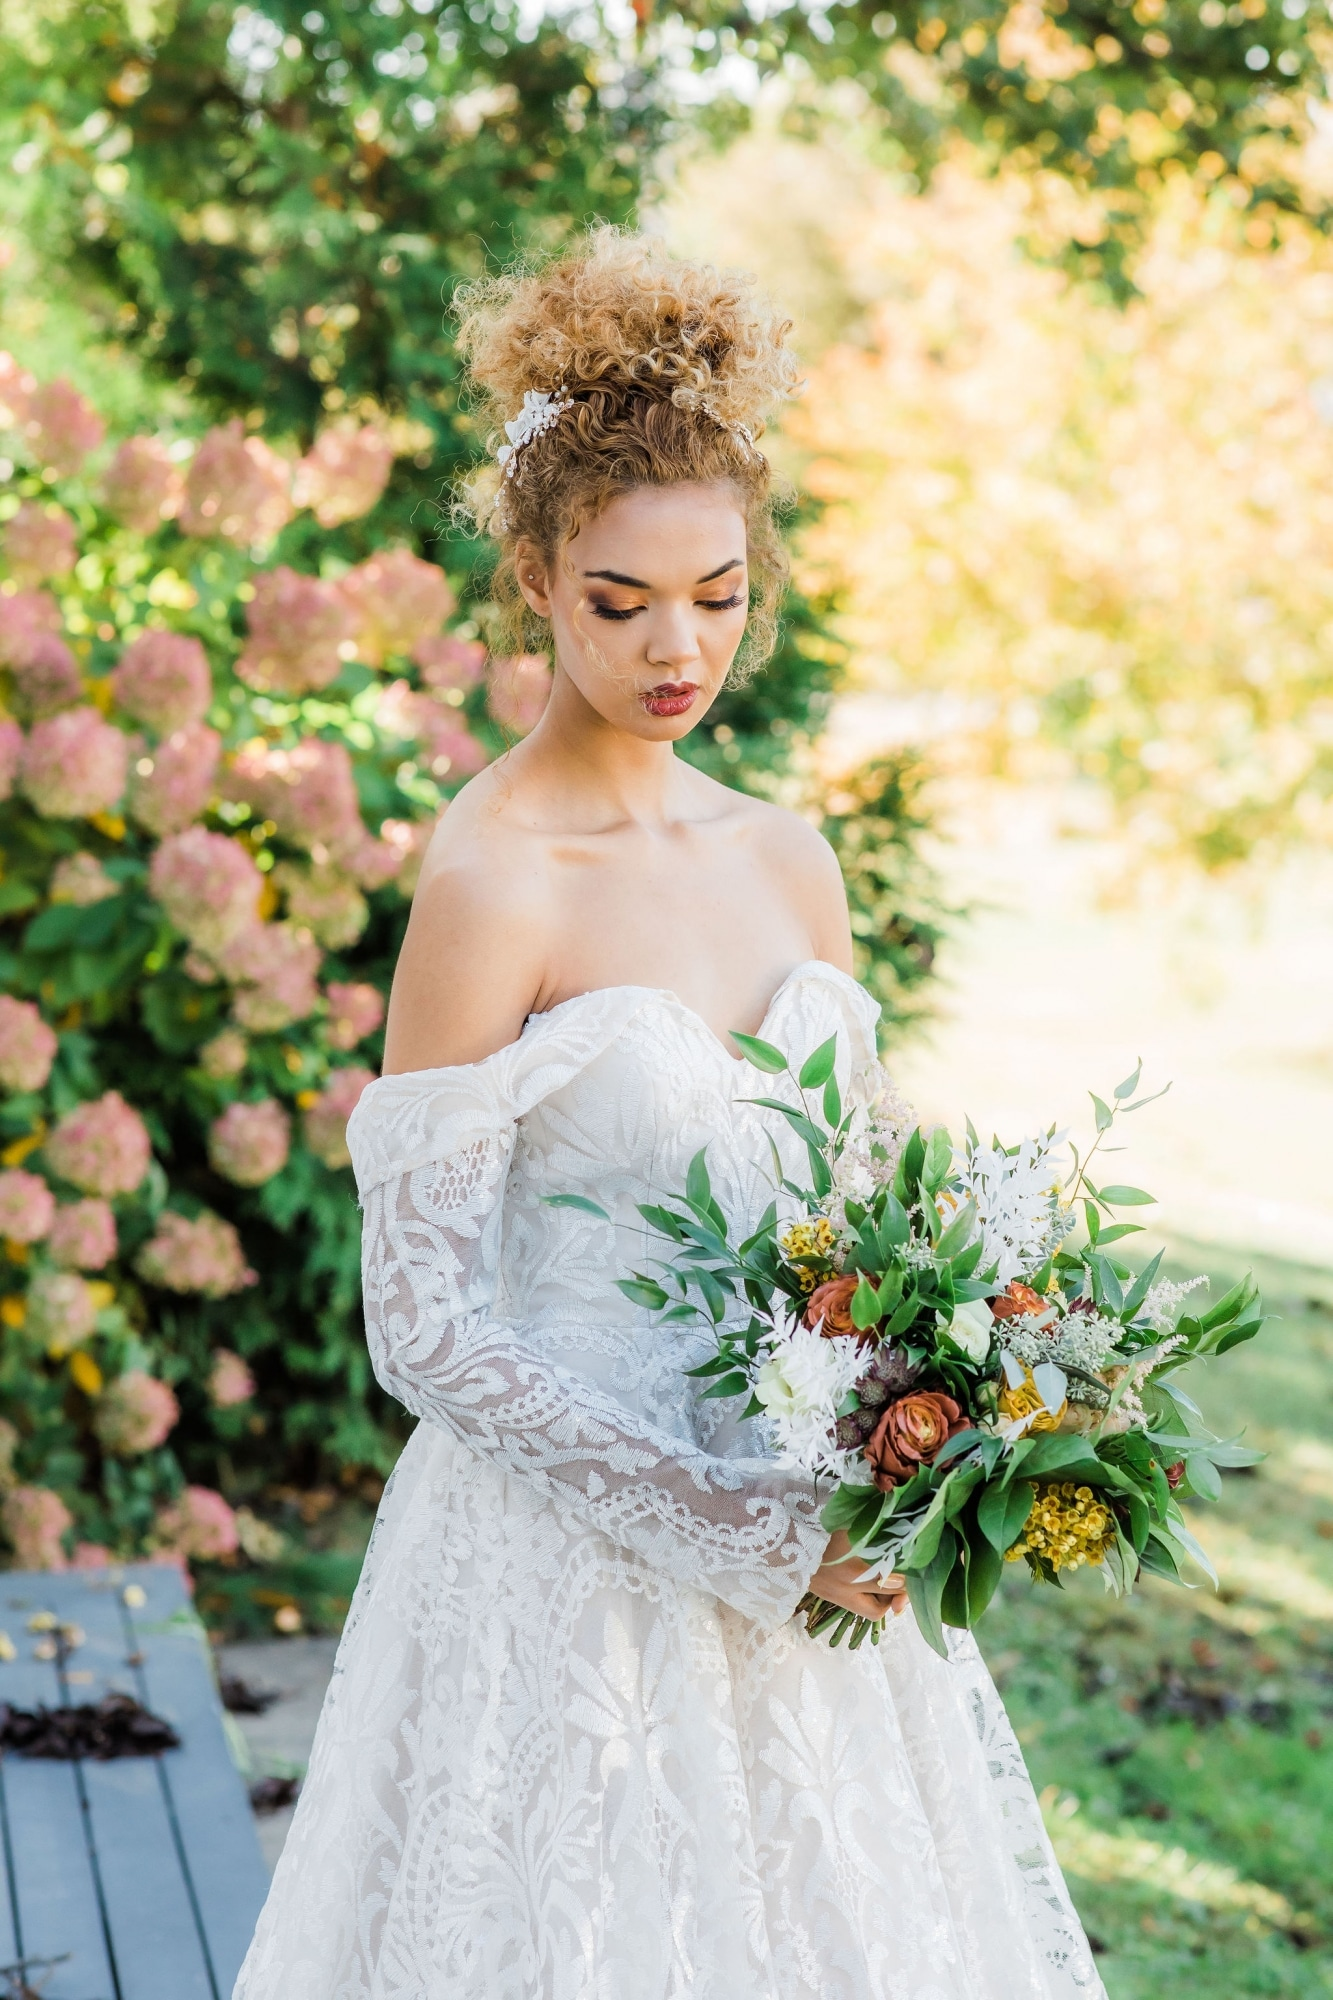 decadent florals with bride in strapless gown looking downwards with stunning makeup